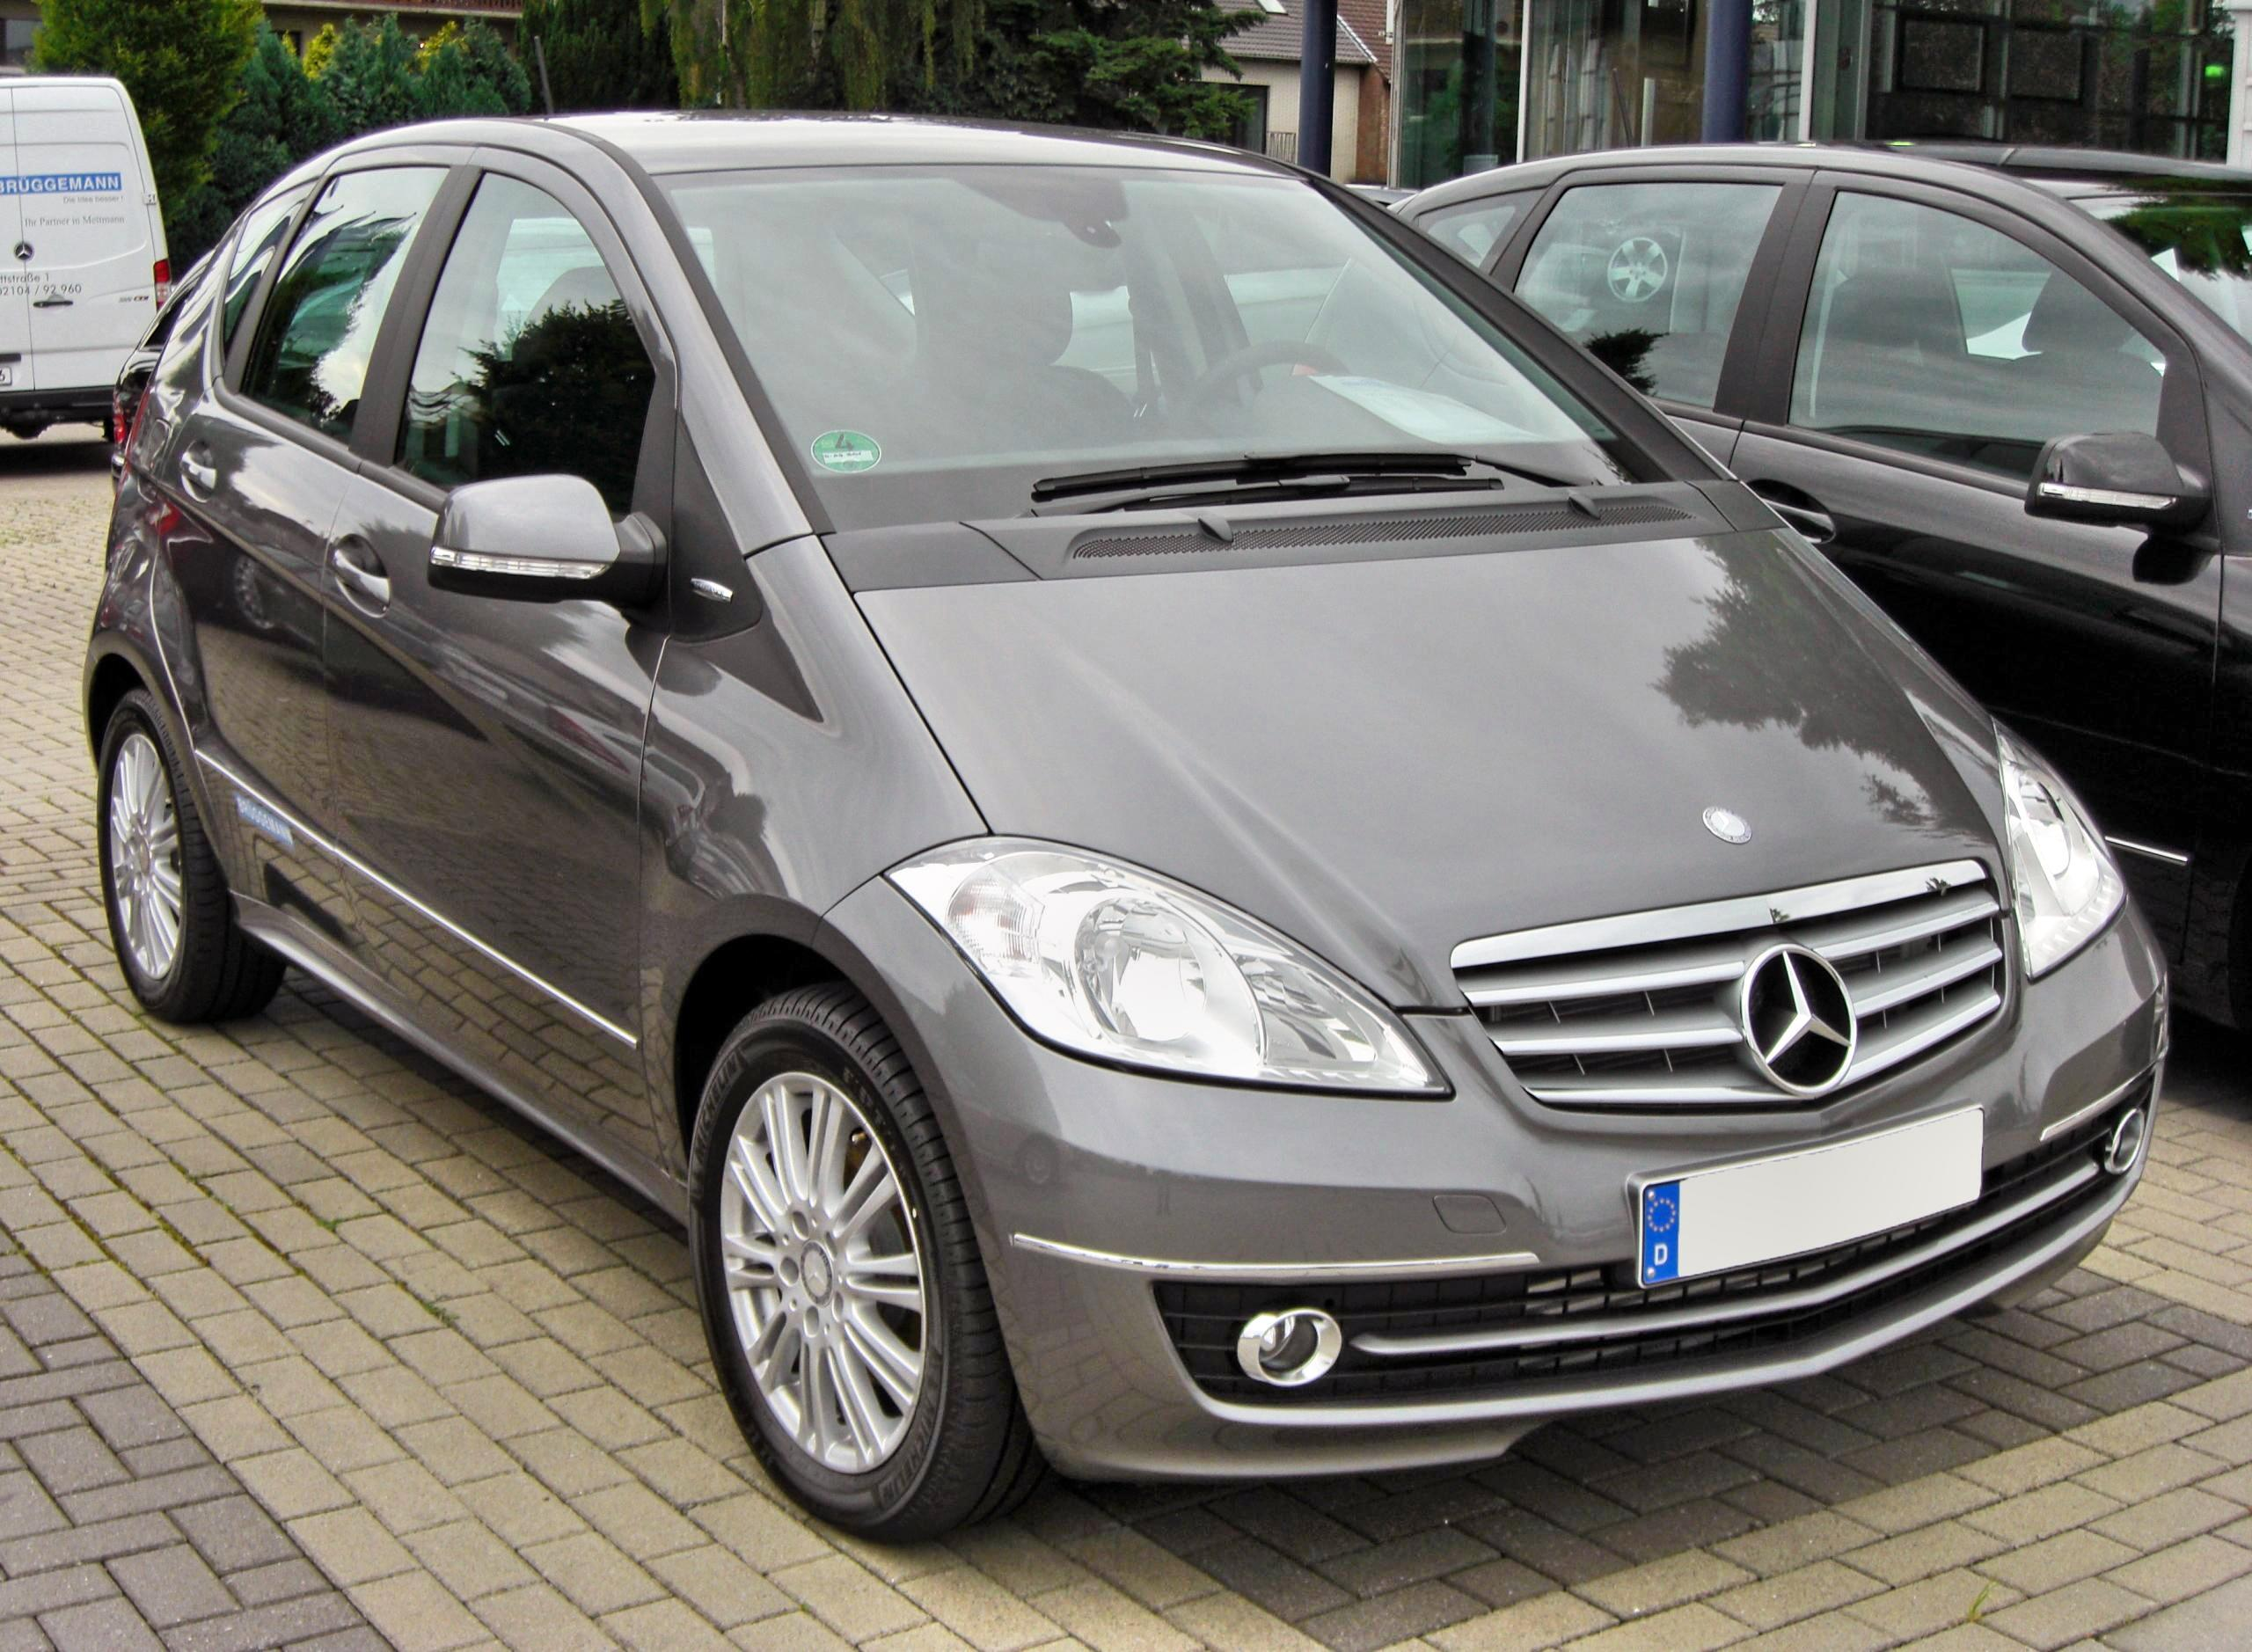 file mercedes a 160 cdi elegance w169 facelift 20090620 front jpg wikimedia commons. Black Bedroom Furniture Sets. Home Design Ideas